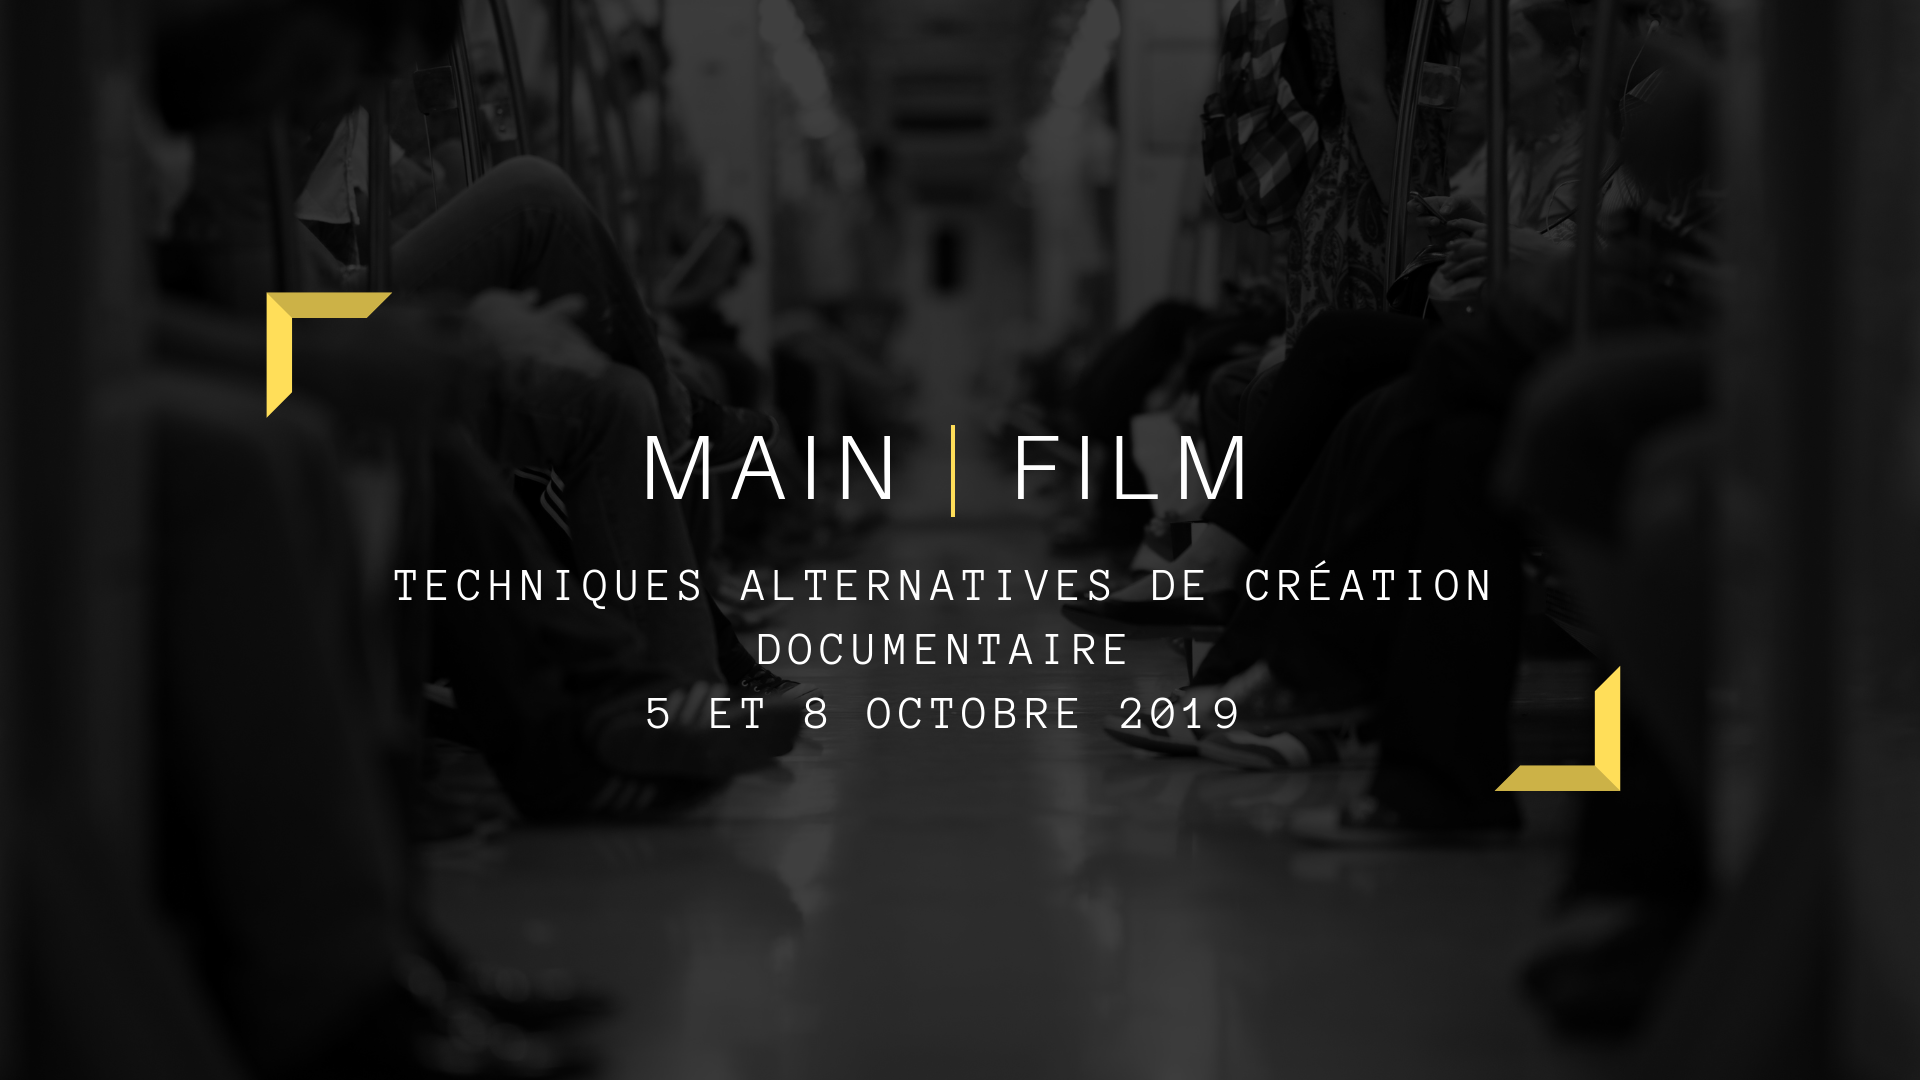 TECHNIQUES ALTERNATIVES DE CRÉATION DOCUMENTAIRE